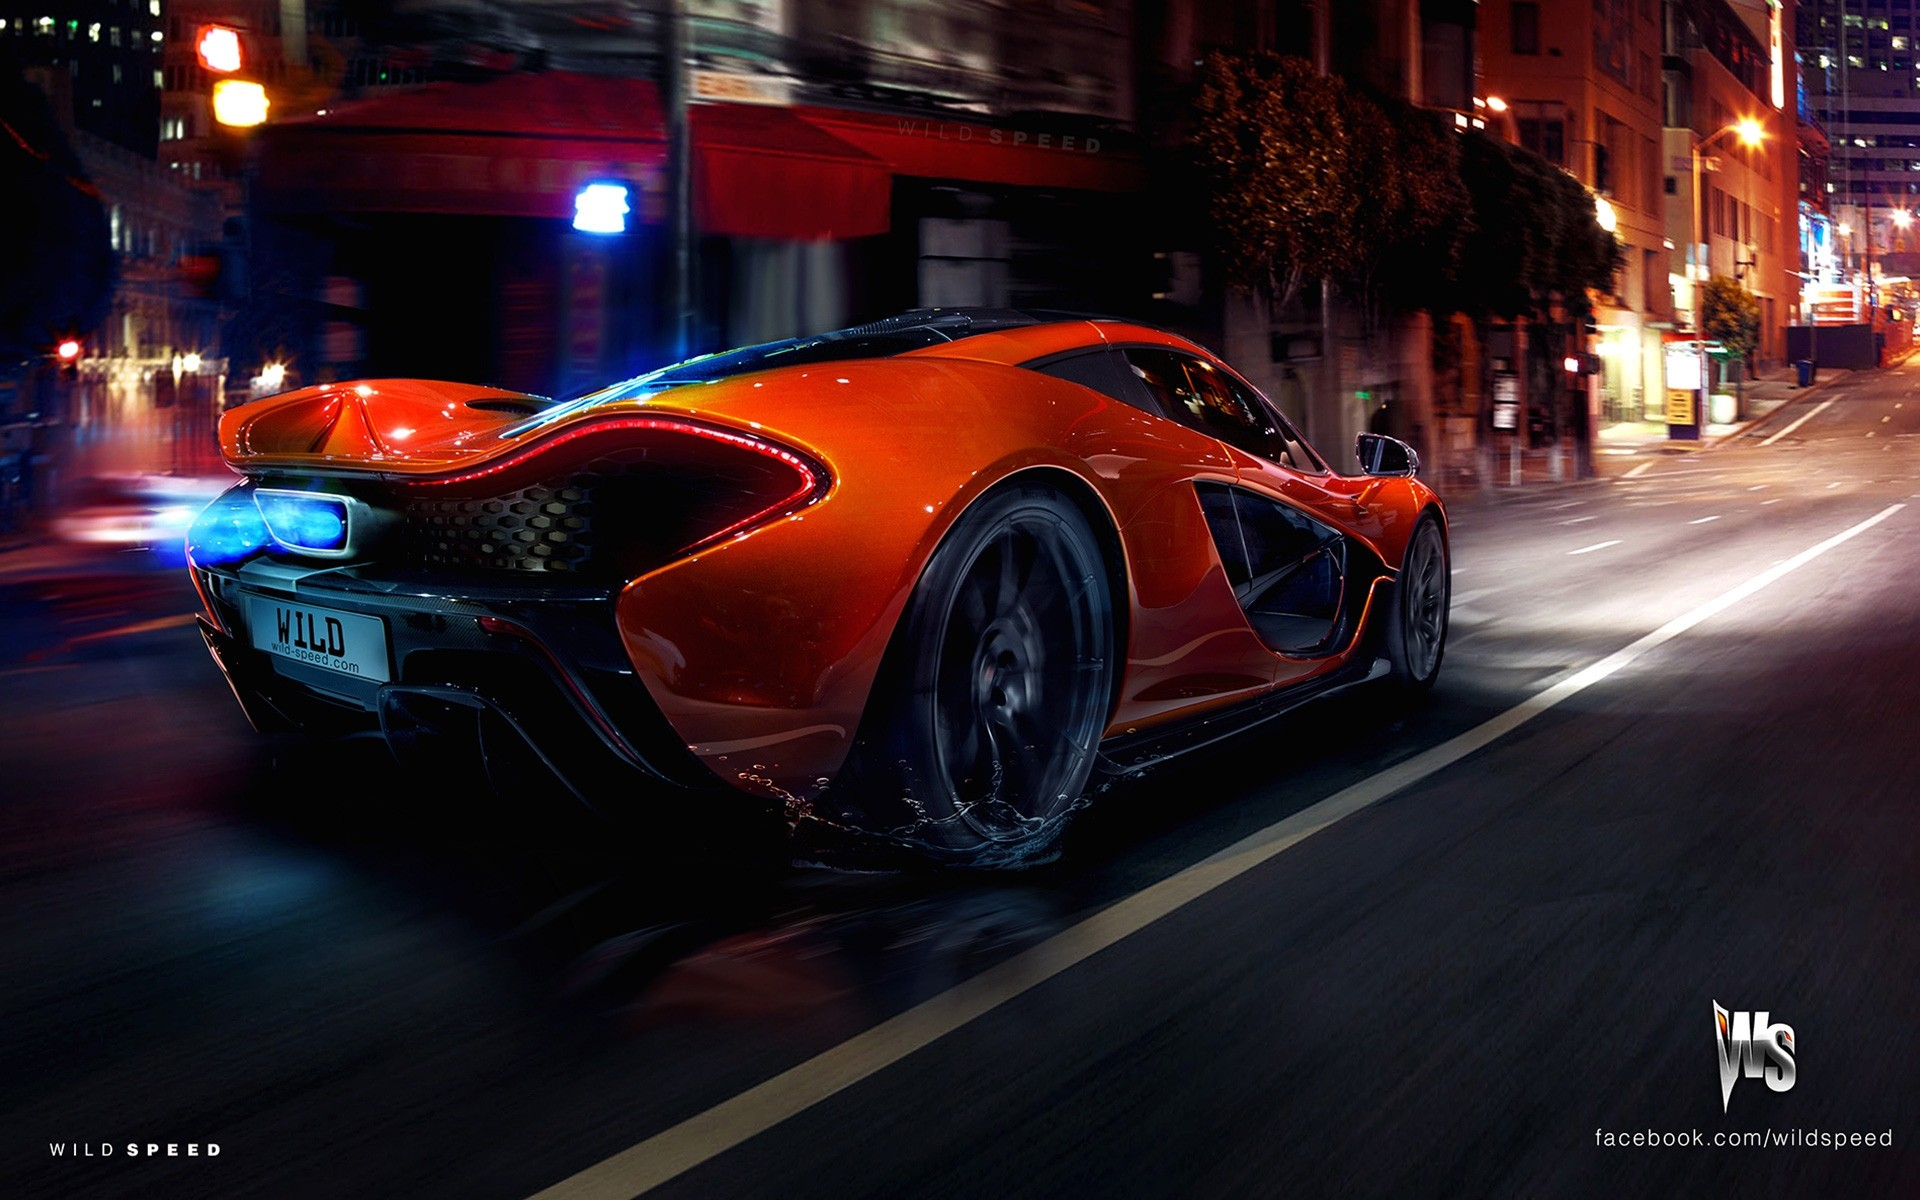 orange mclaren p1 hypercar concept. desktop wallpapers for free.